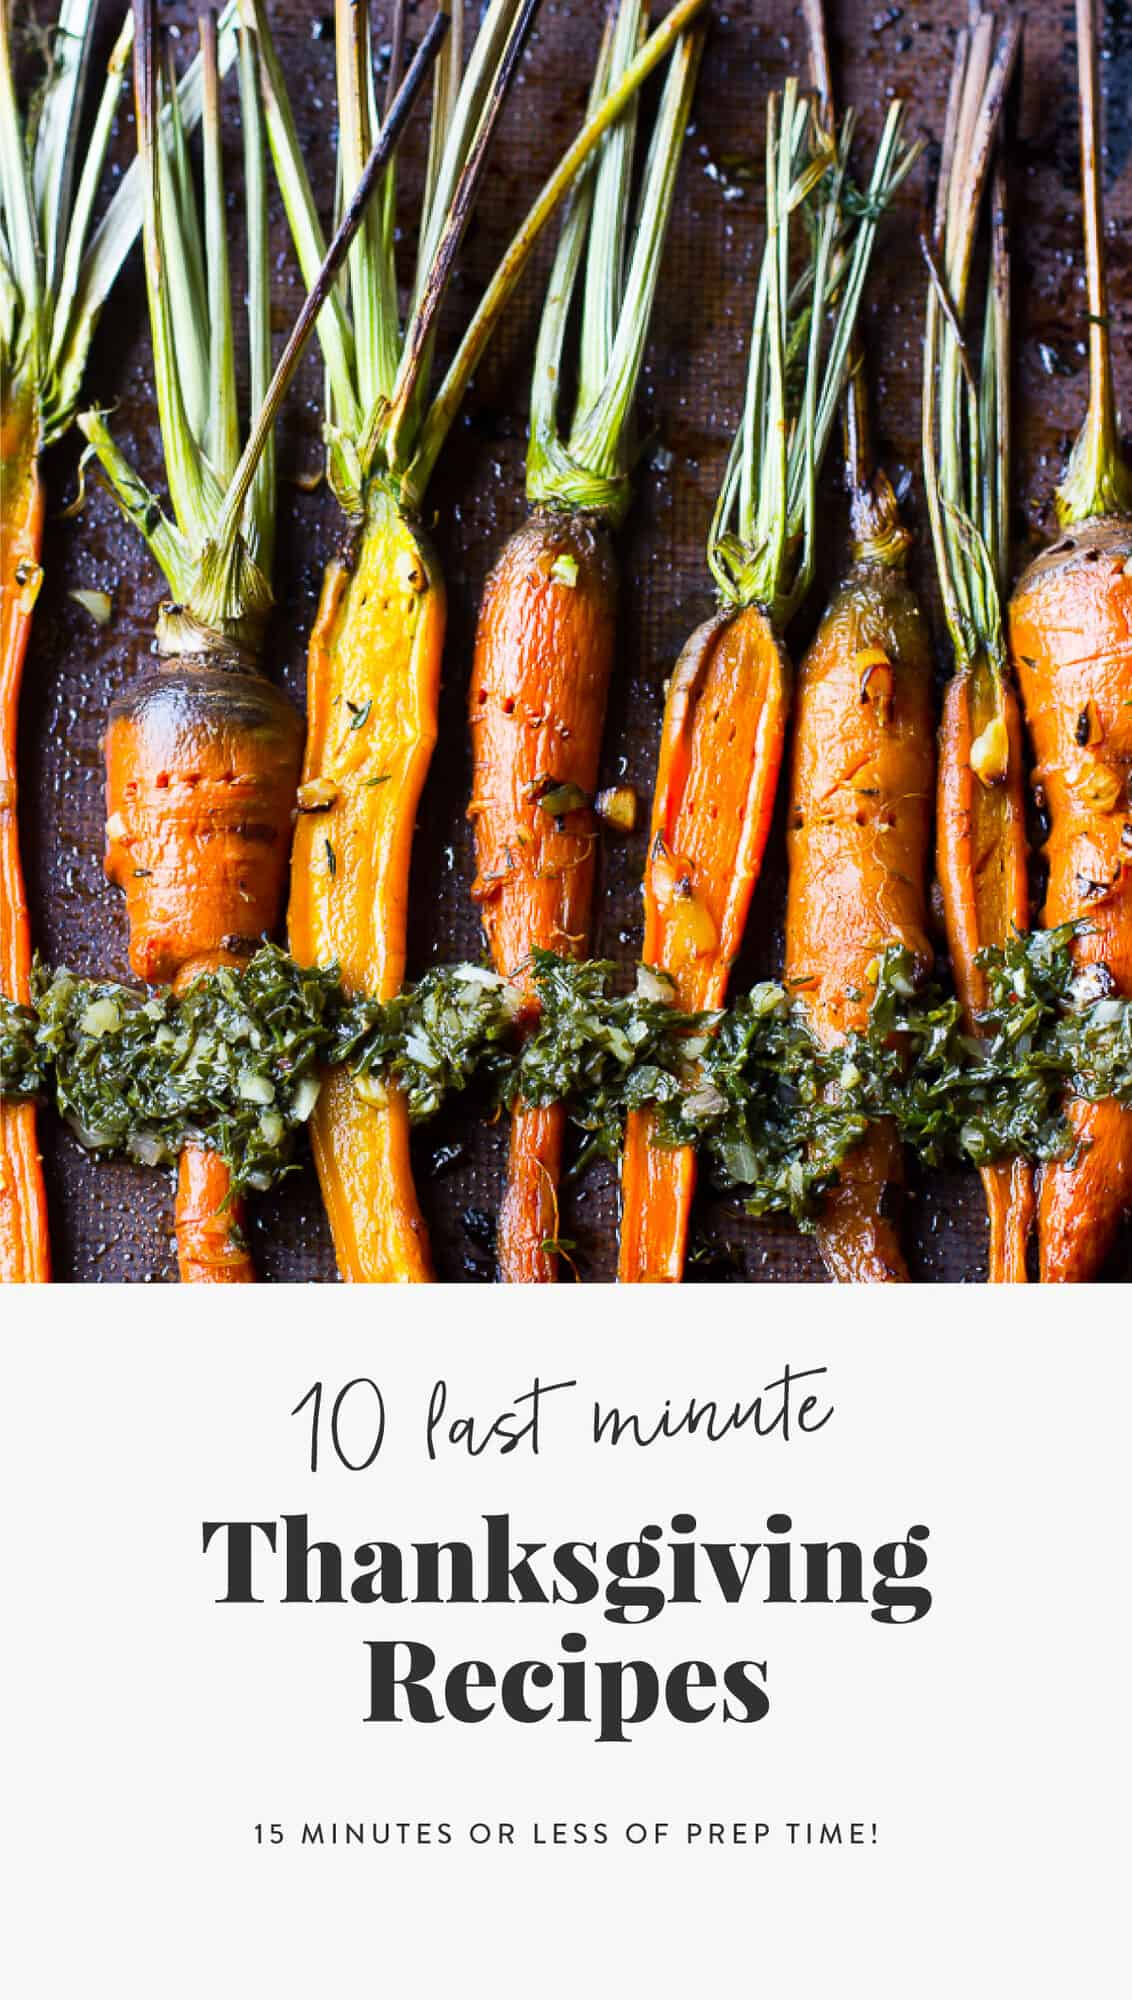 Here are my top choices for10 Last Minute Thanksgiving Dishes with 15 minutes or LESS of Prep time!